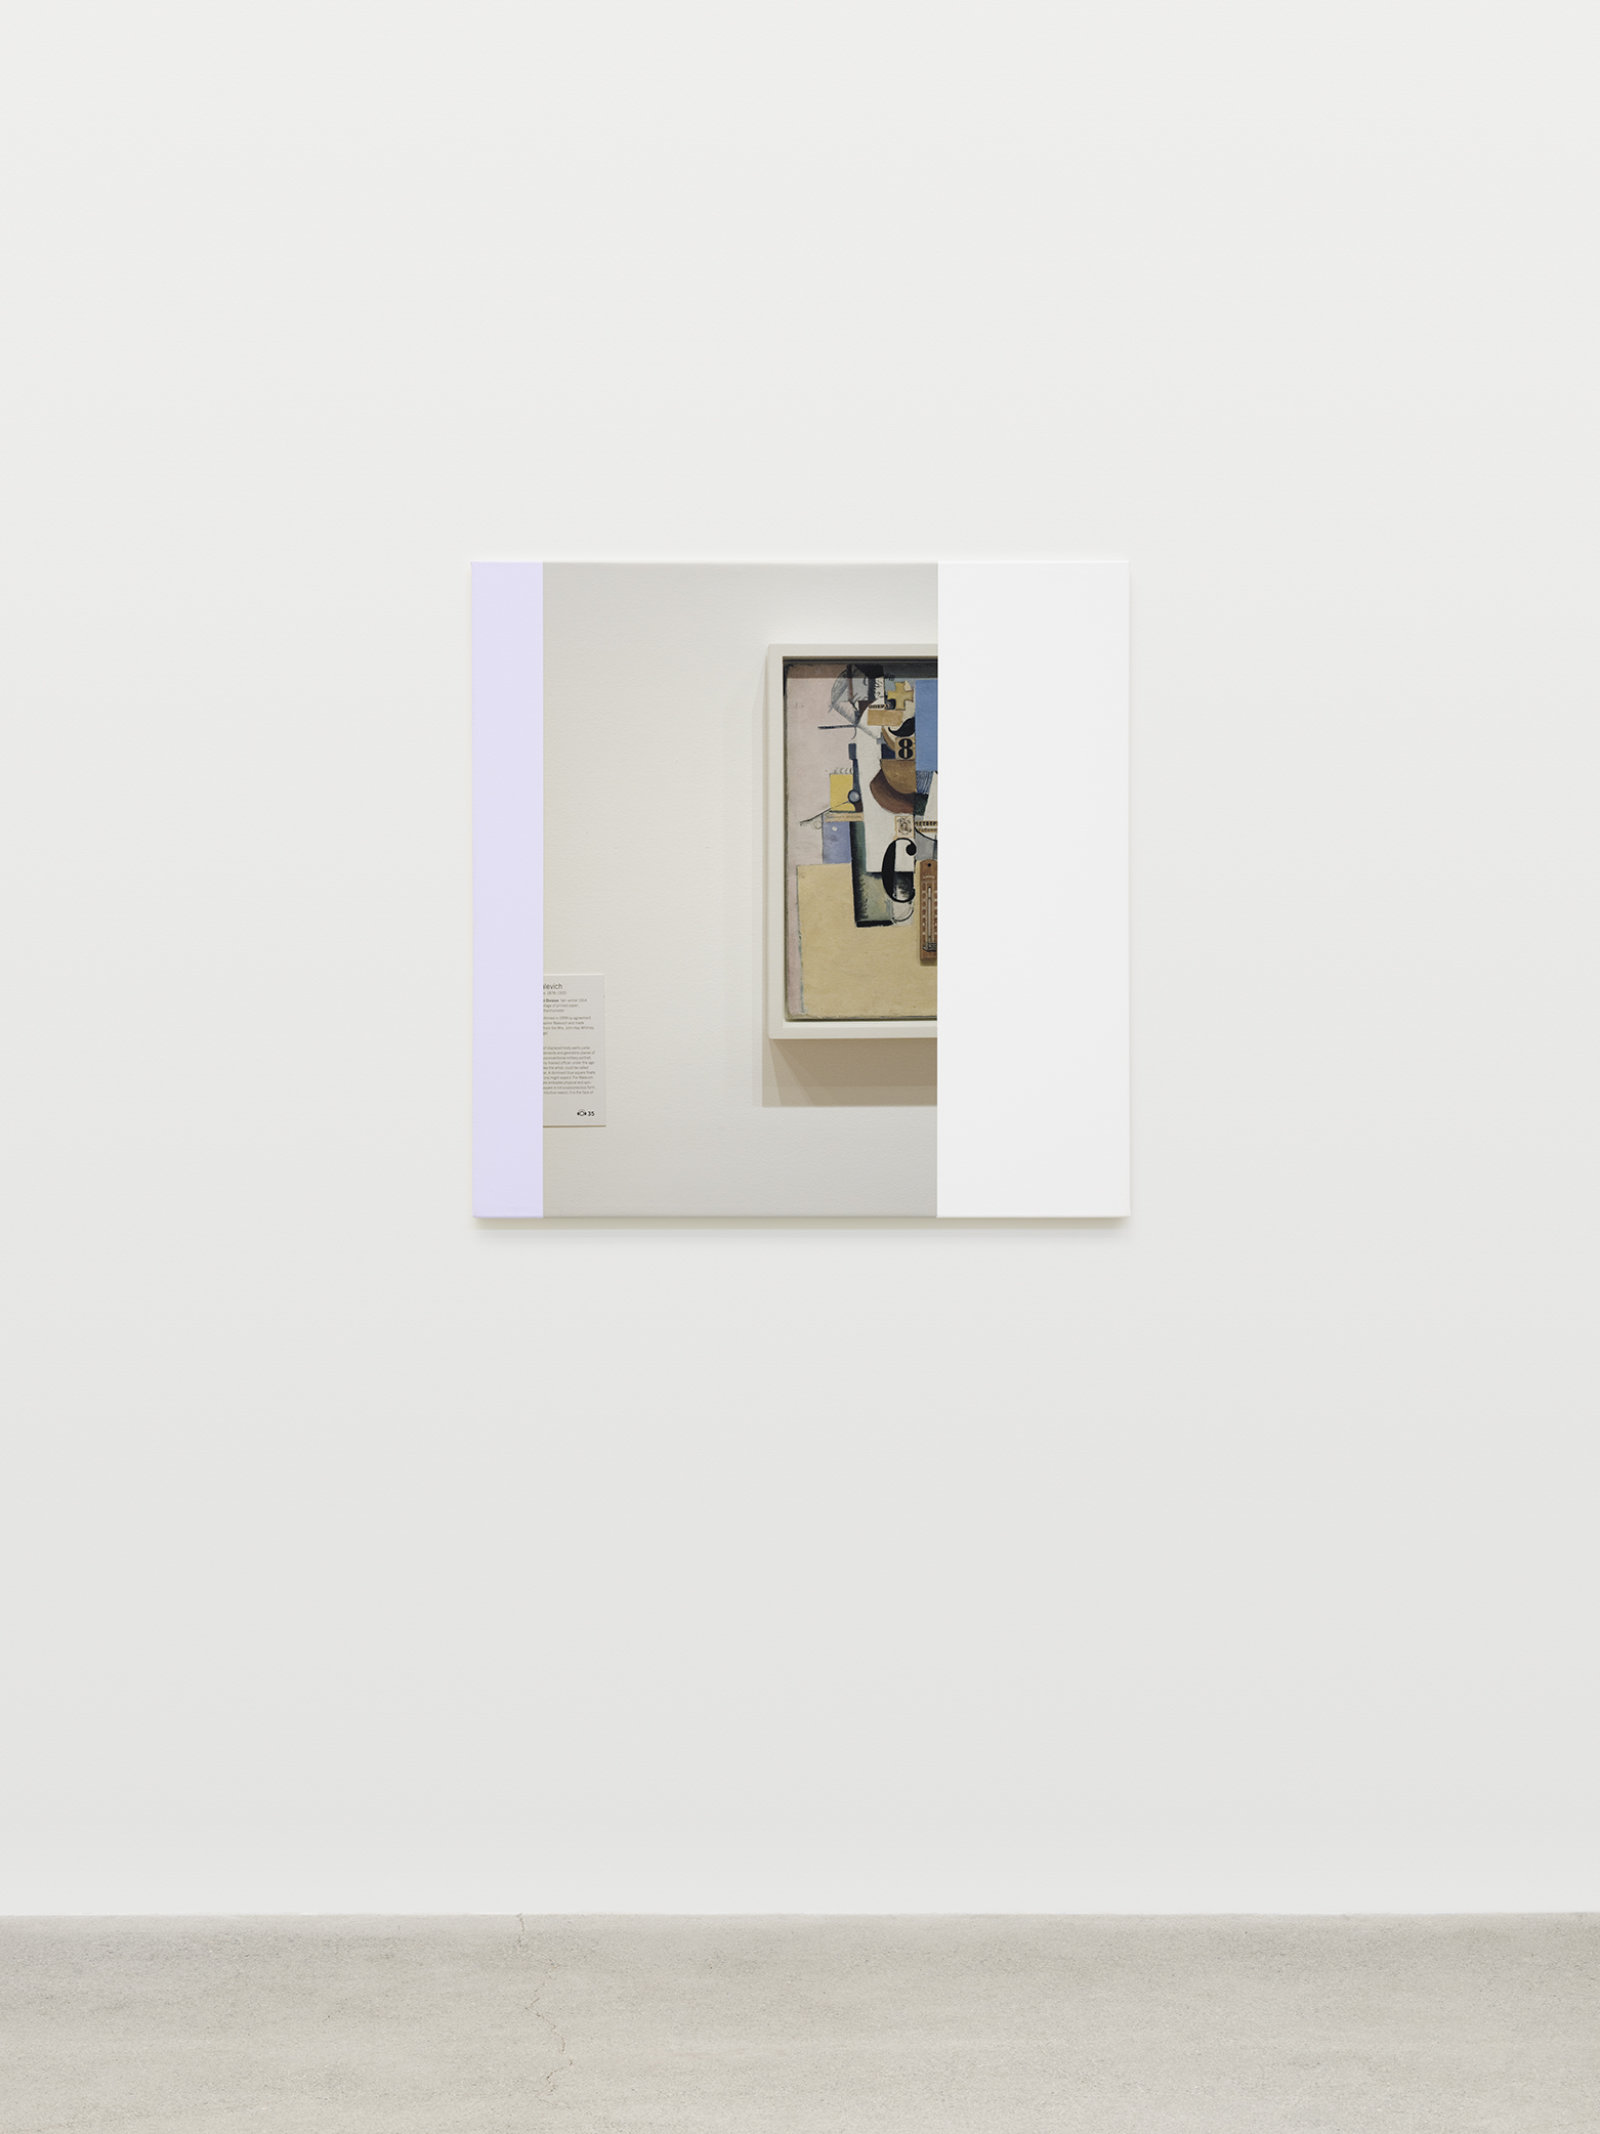 Ian Wallace, Abstract Painting (MOMA NYC) I, 2009, photolaminate with acrylic on canvas, 36 x 36 in. (91 x 91 cm)